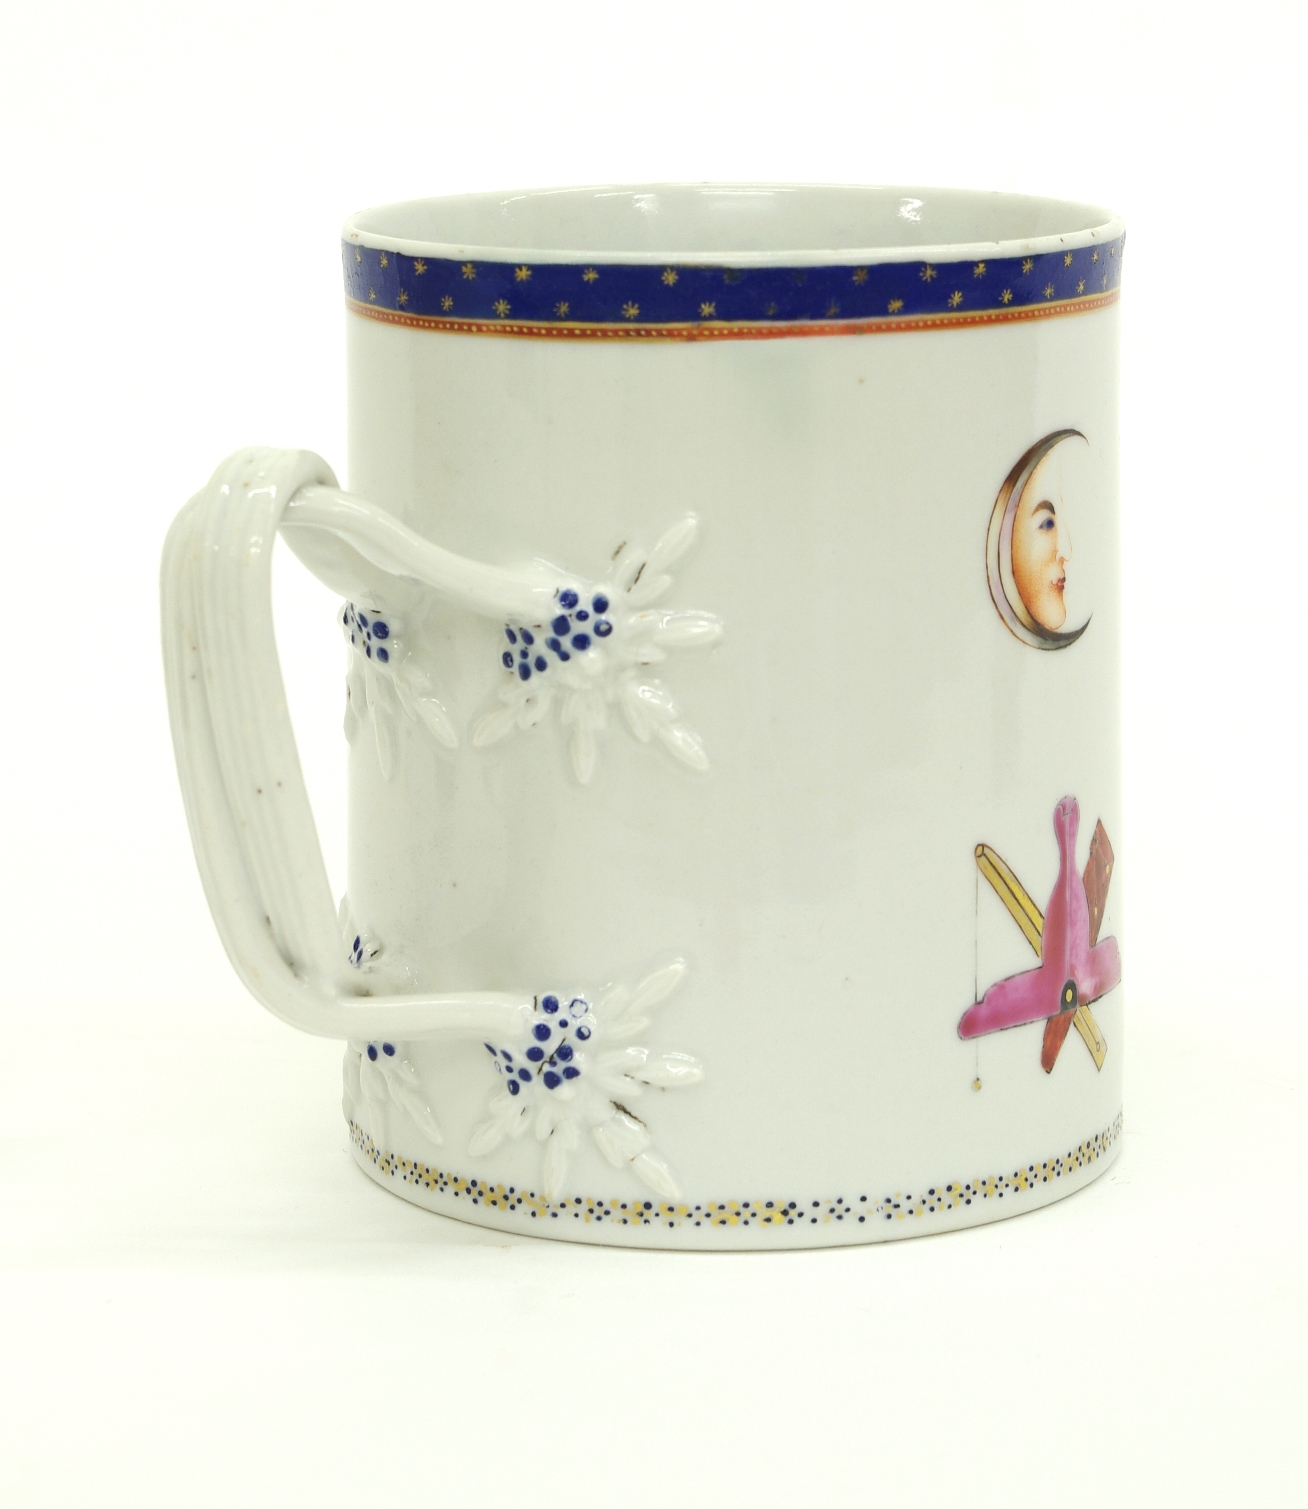 View 4: Chinese Export Porcelain Masonic Mug, c. 1795